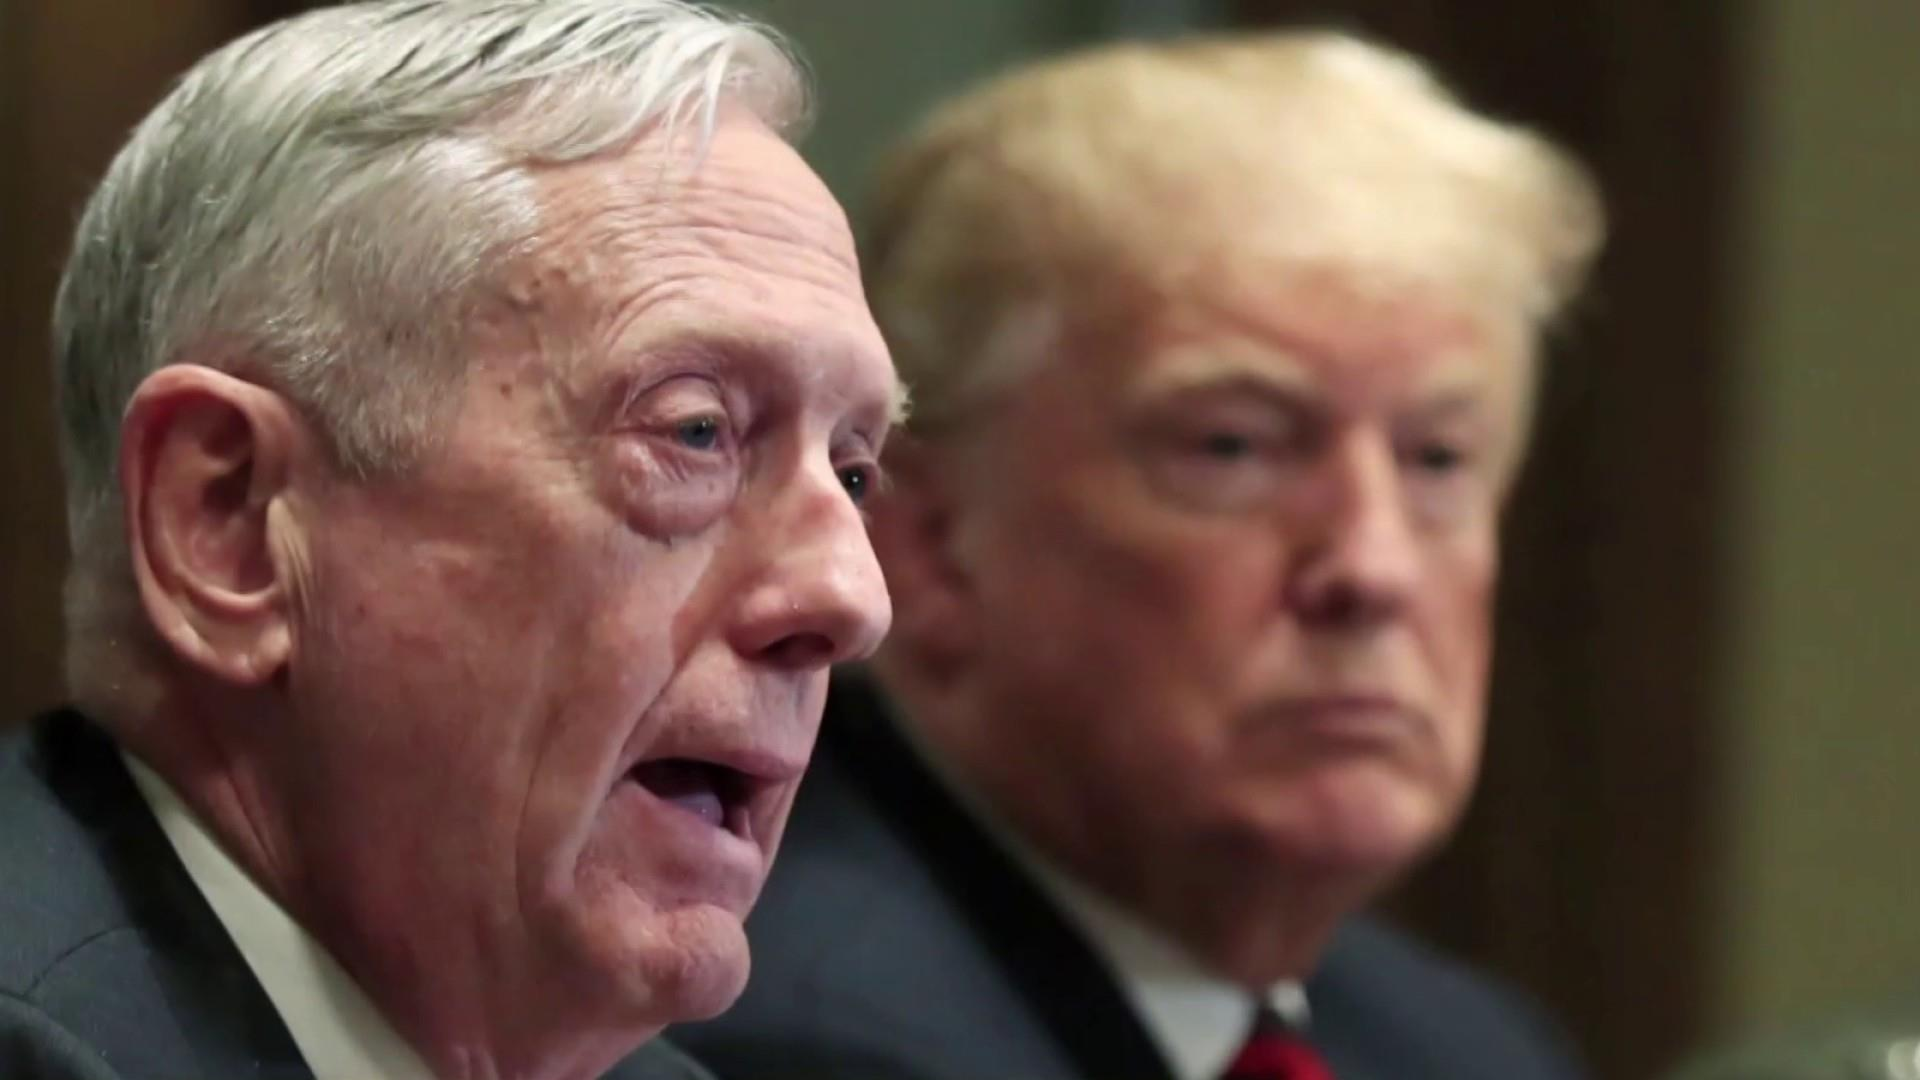 Atlantic: Mattis found Trump to be of 'limited cognitive ability, dubious behavior'